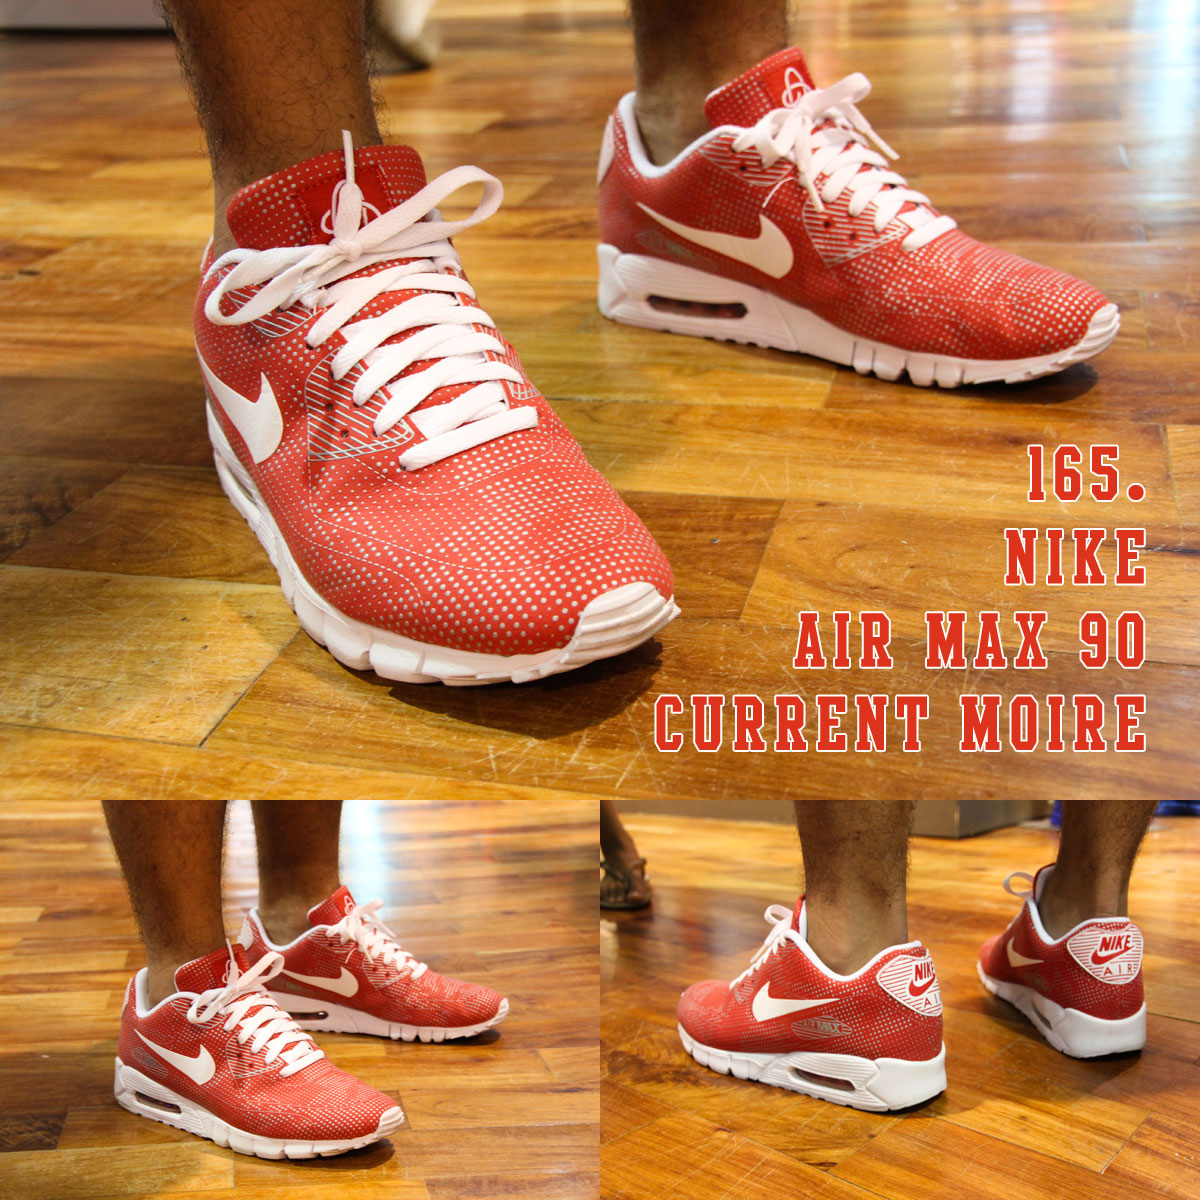 low priced 44655 daa6f Nike Air Max 90 Current Moire -